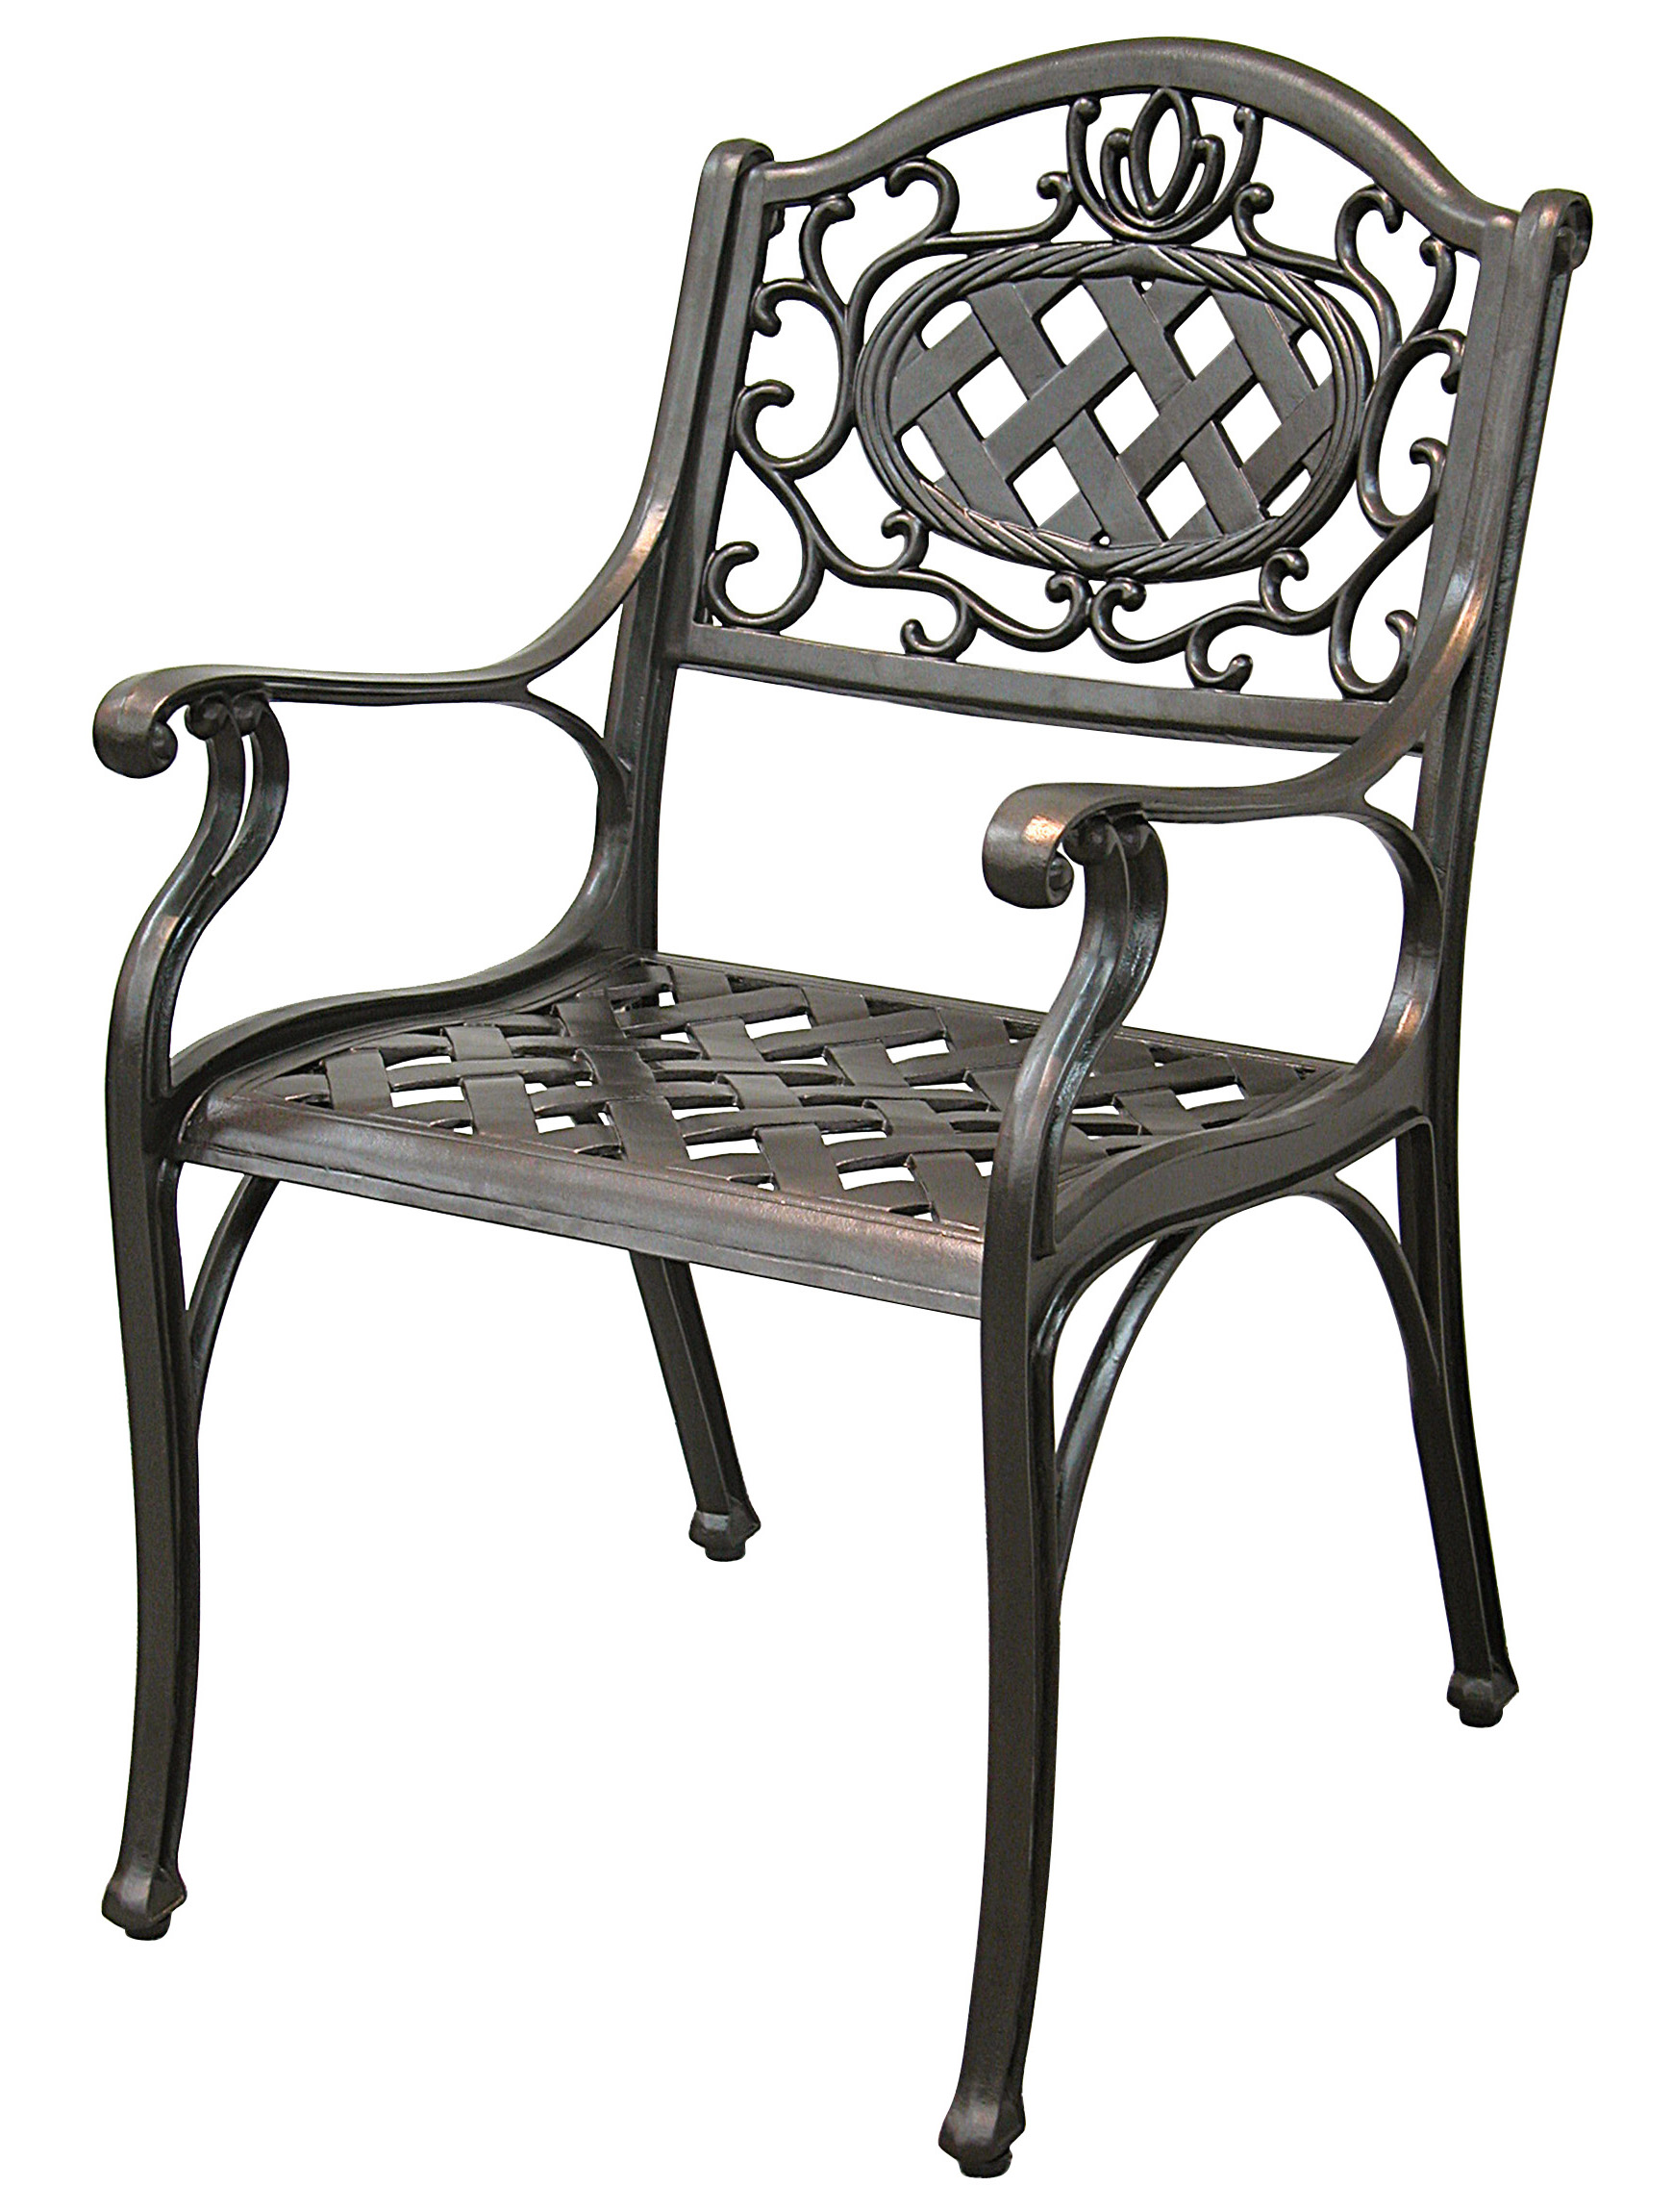 Patio Furniture Chair Dining Arm Cast Aluminum Cambridge